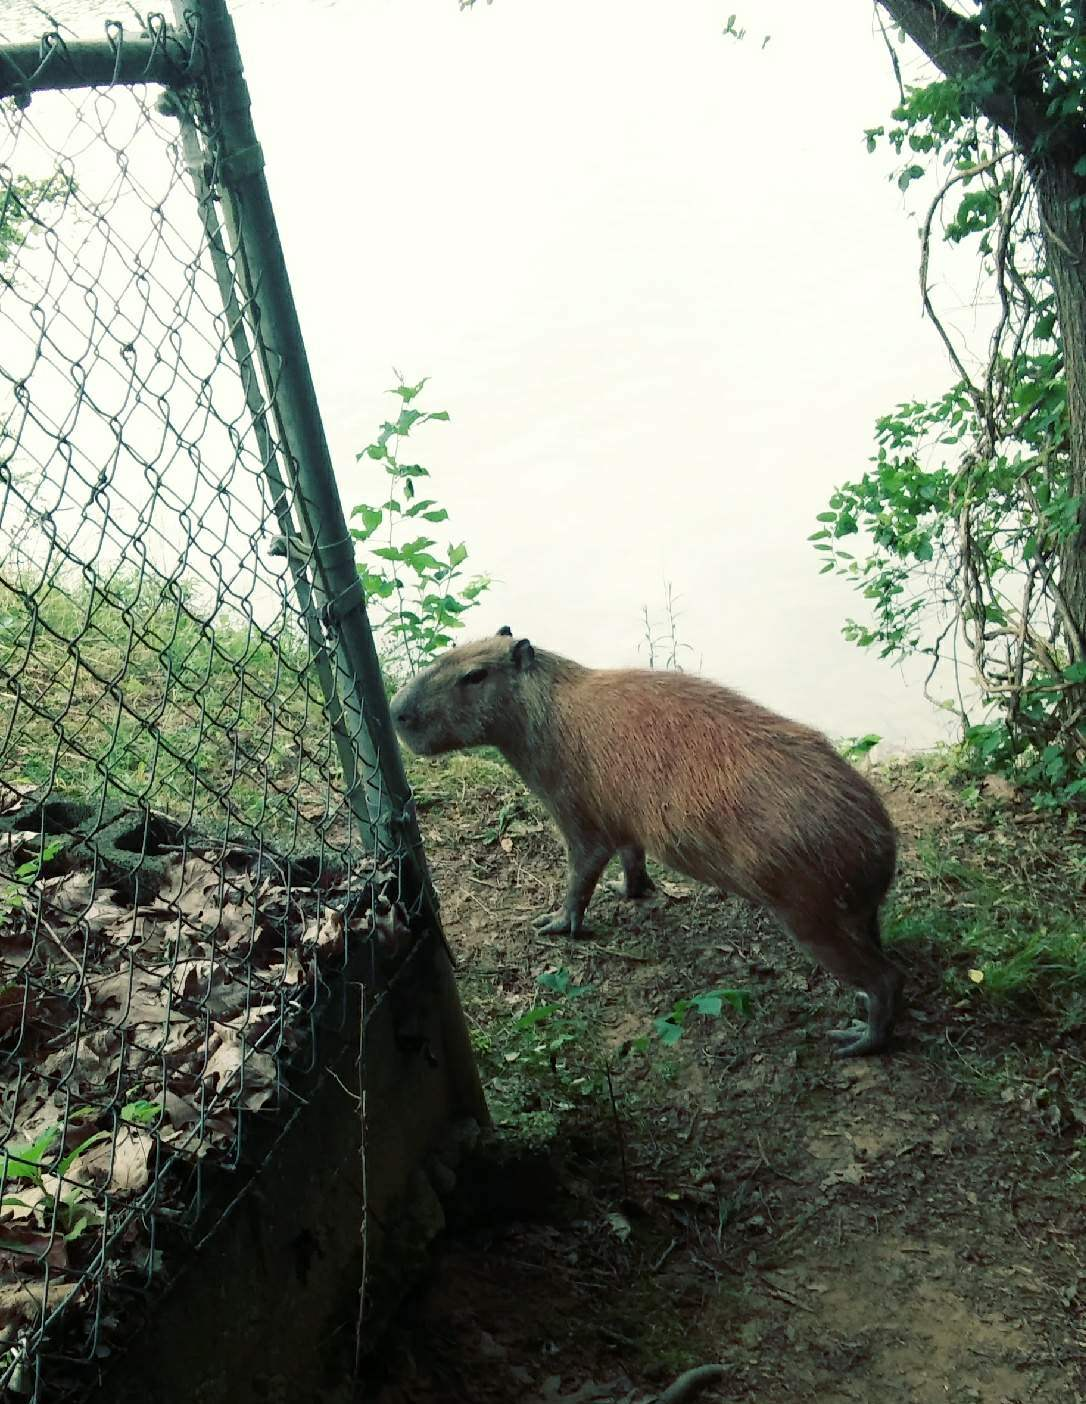 The capybara (Hydrochoerus hydrochaeris) is the largest rodent in the world. It is a close relative to the guinea pig. Native to South America, the capybara inhabits savannas and dense forests and lives near bodies of water. (Photo courtesy TWRA)